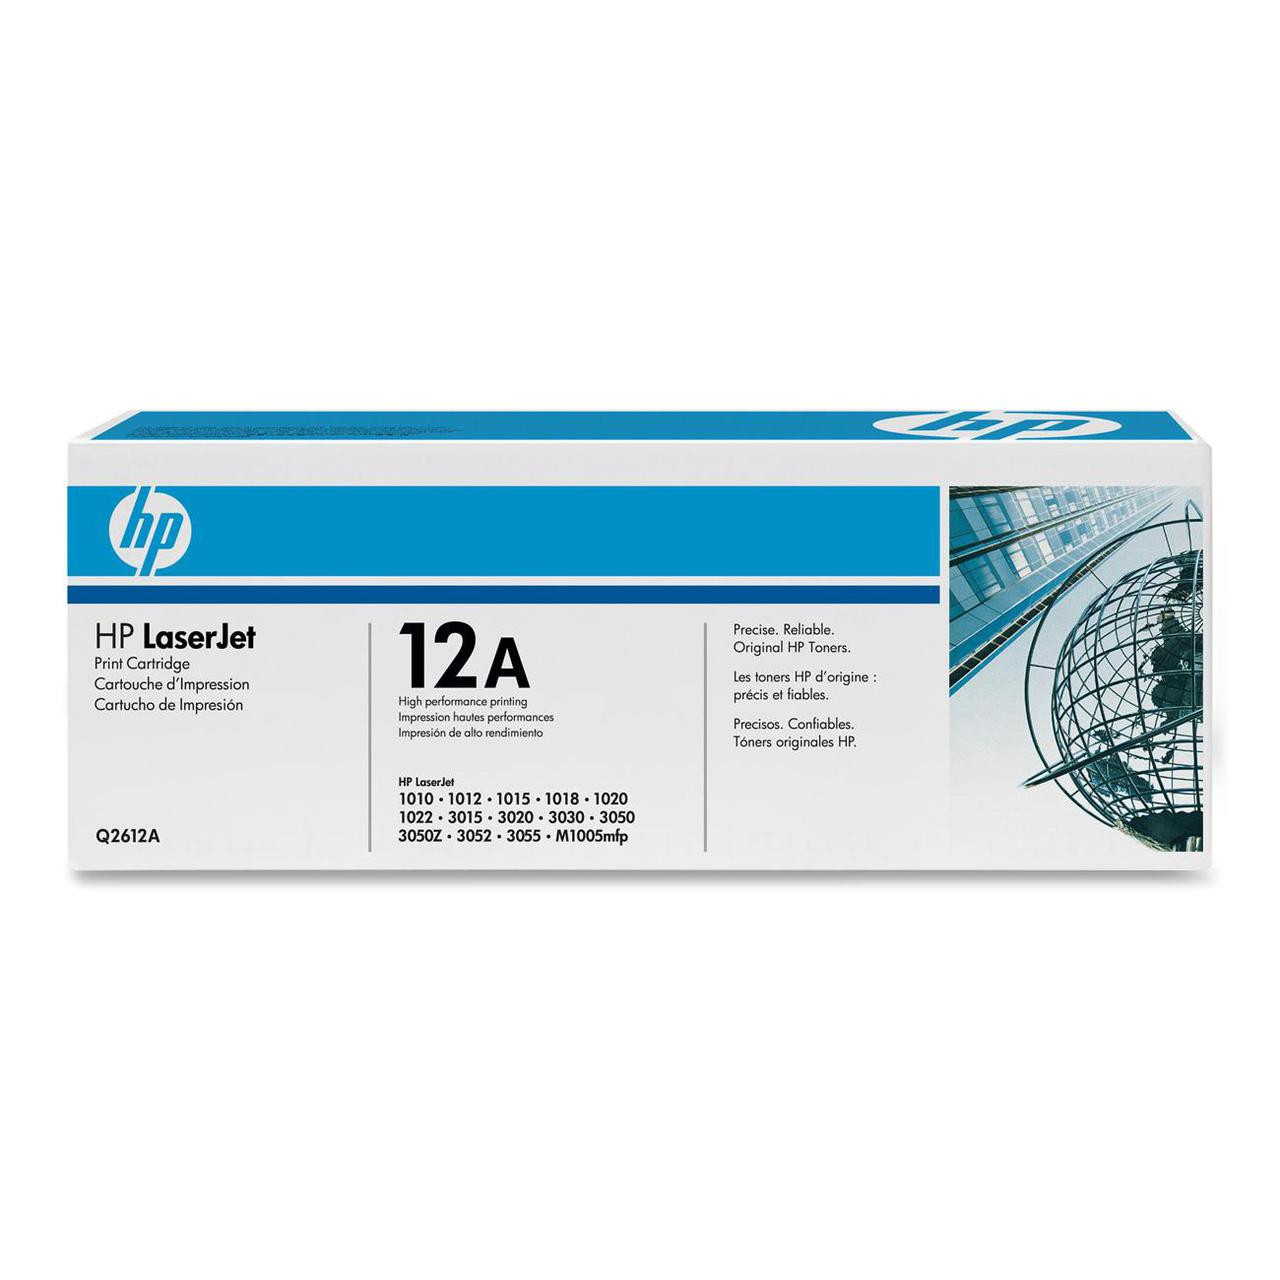 HP 1022 3030 Toner Cartridge - New